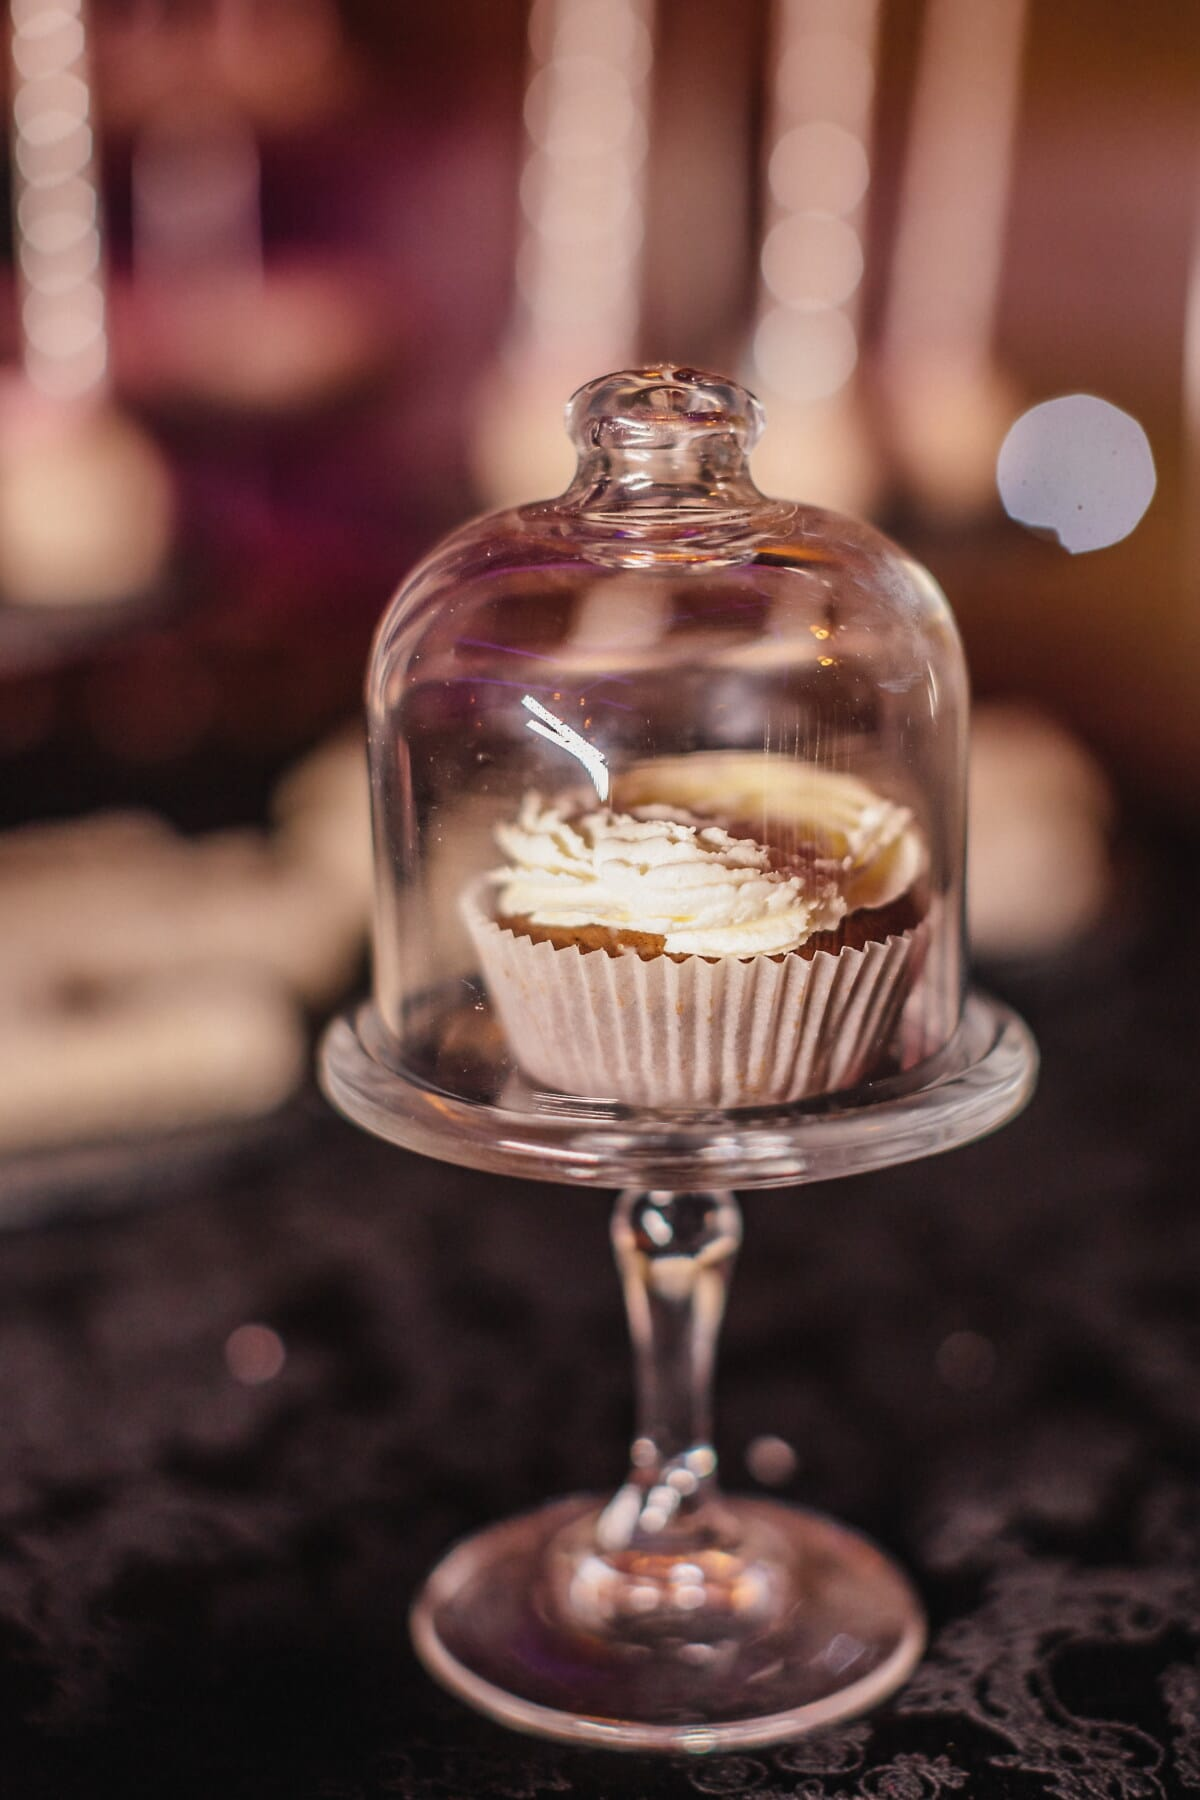 cupcake, vanilla, underneath, crystal, bell, glass, still life, indoors, candle, christmas